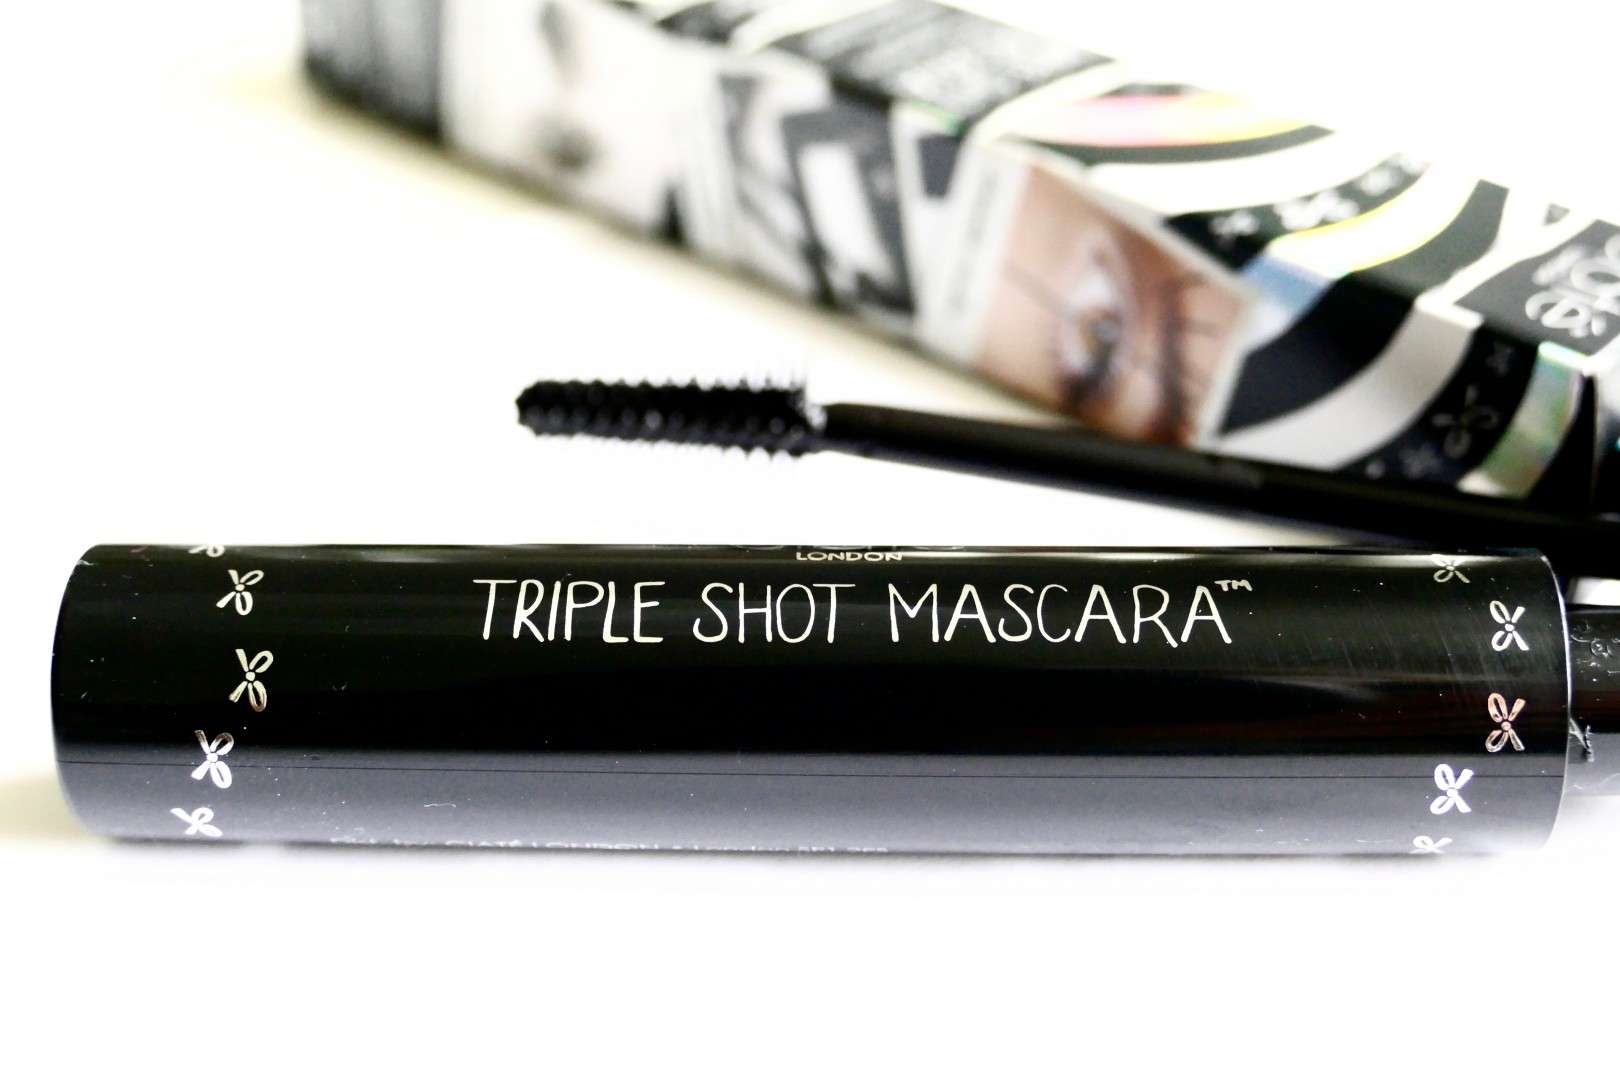 triple sHot mascara